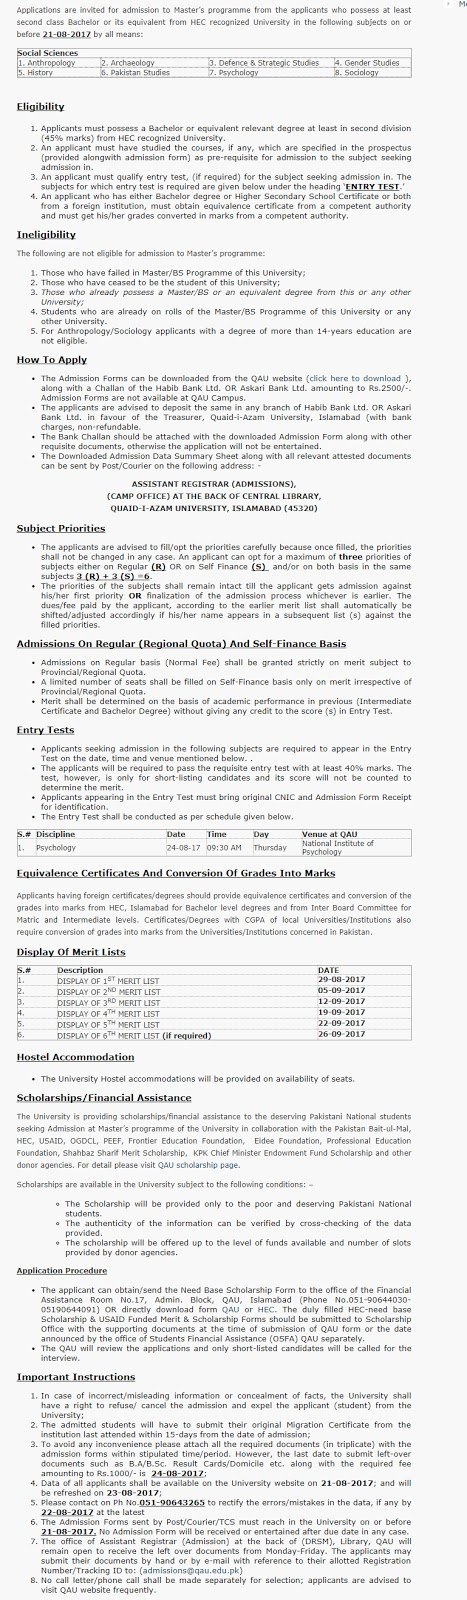 Master Scholarship at Quaid i Azam University(QAU) for Pakistani Students